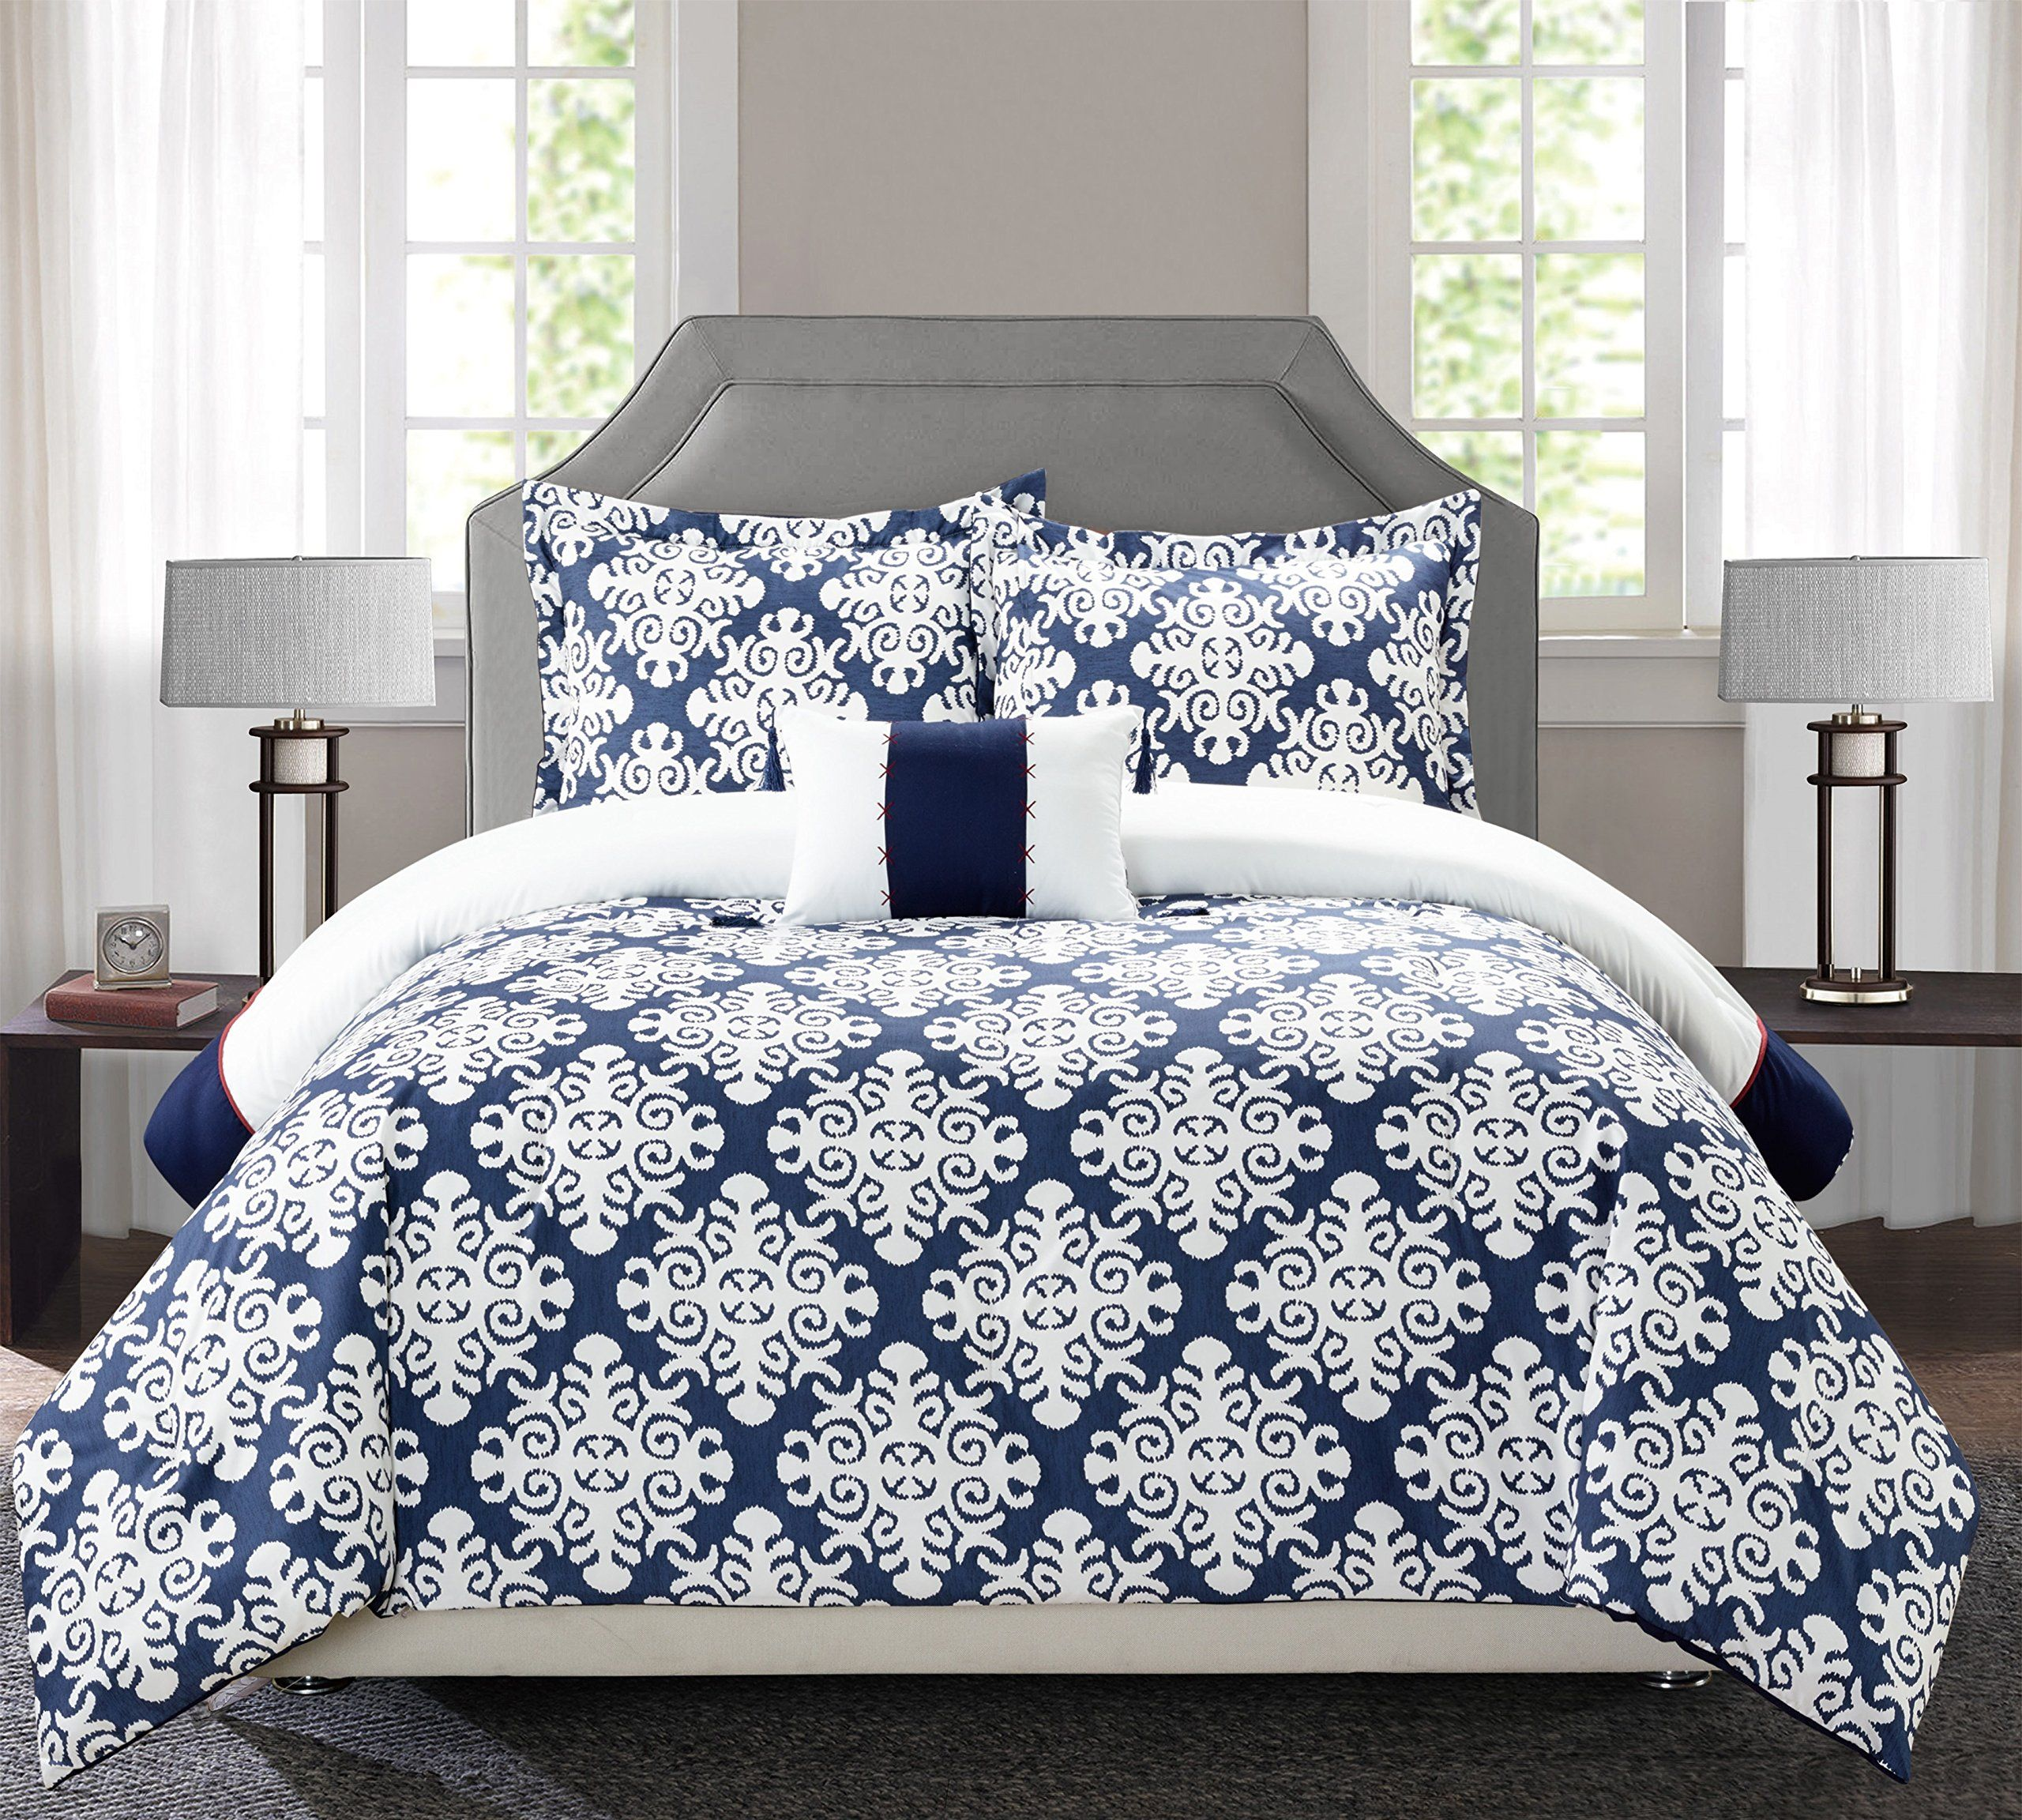 Perfect Home 4 Piece Floyd Navy Blue And White Reversible Hotel Collection King Duvet Cover Set Navy Clic Navy Duvet Covers Duvet Cover Sets Blue Duvet Cover Navy blue duvet cover queen